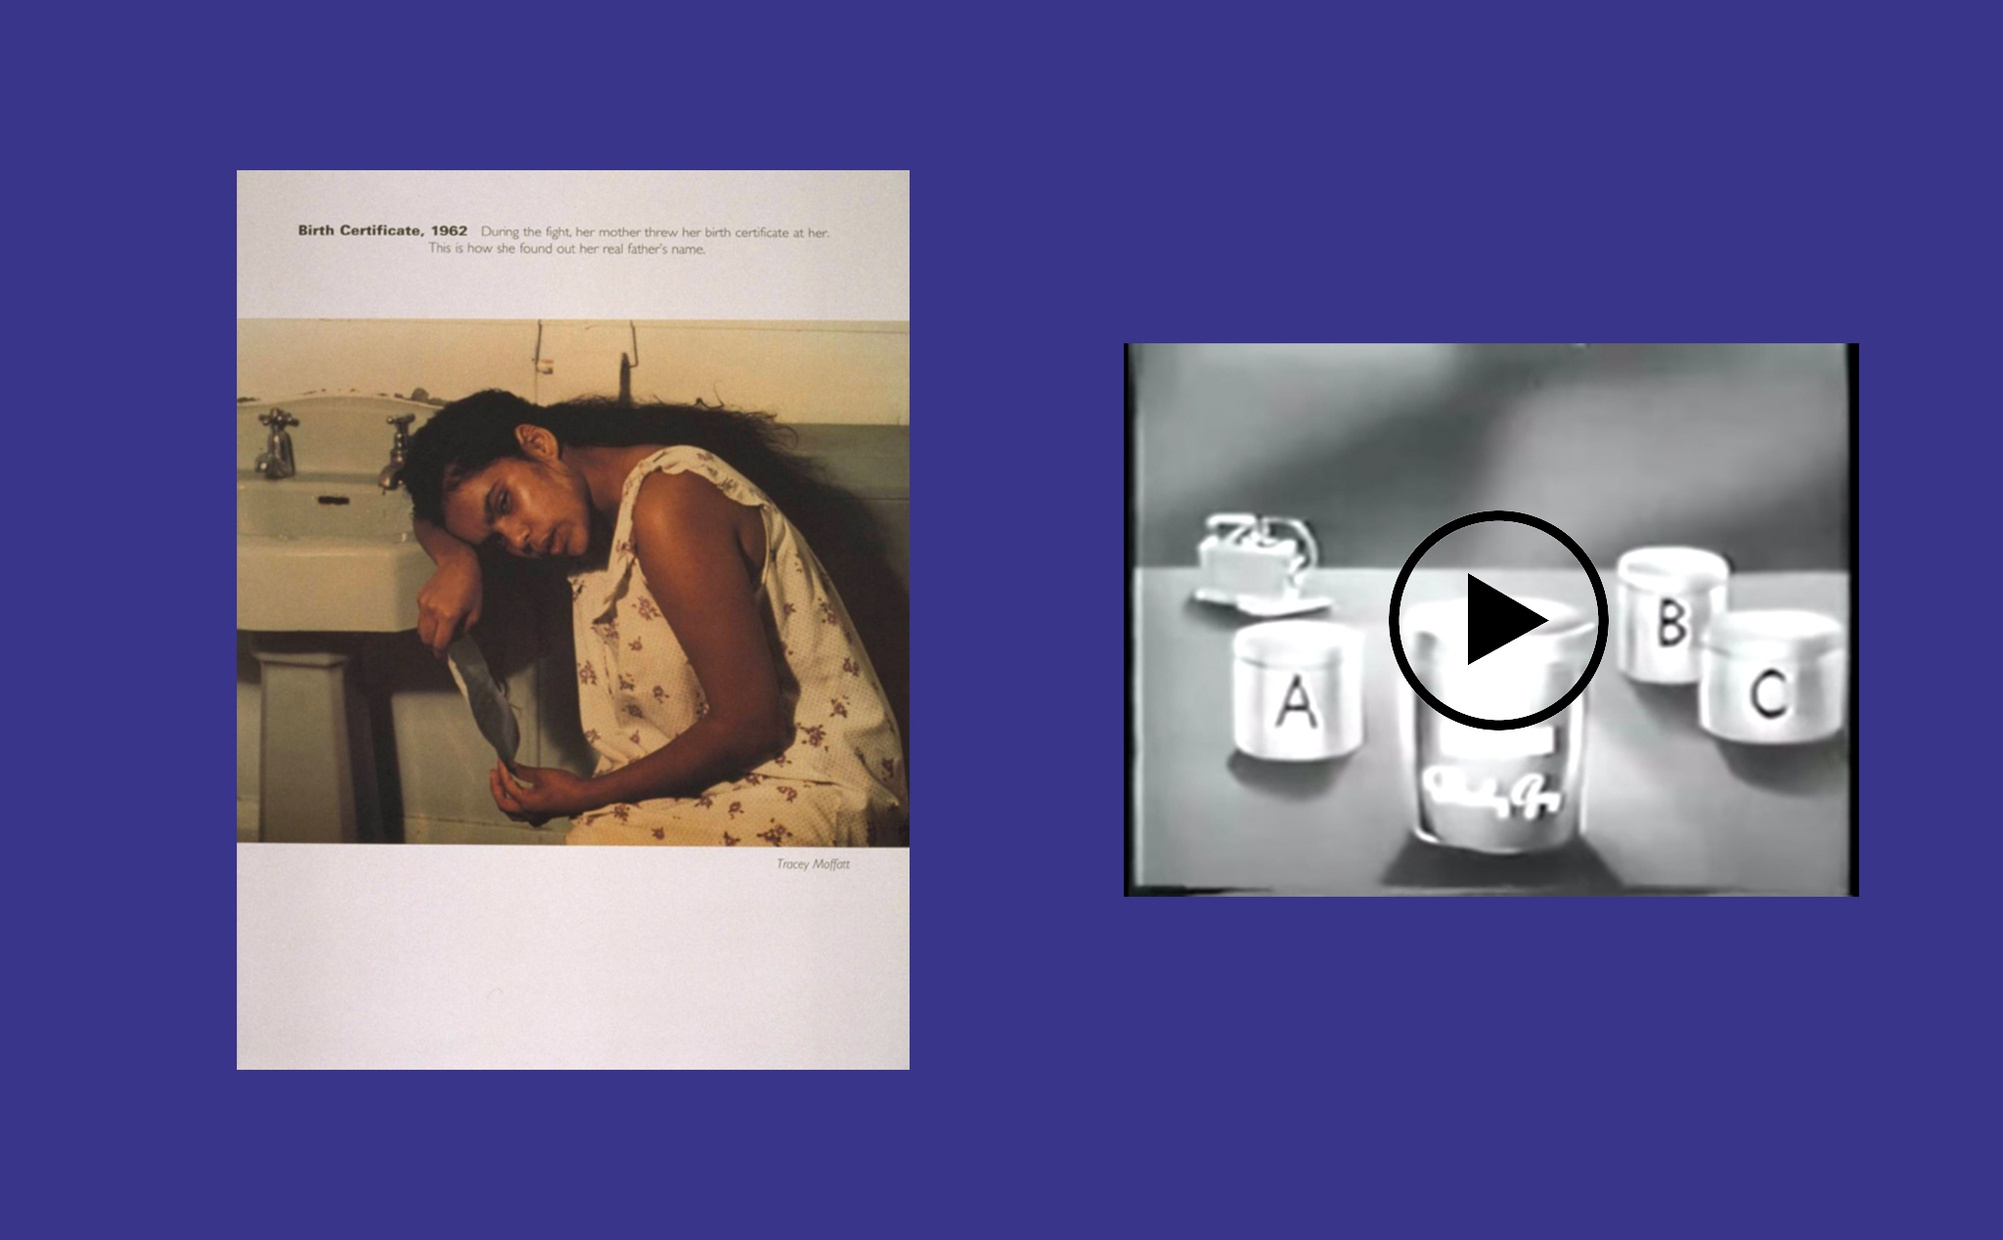 Two images side by side, one image is a color print of a dark-skinned woman seated in a bathroom resting her head and arm on the sink and holding a piece of paper, and the other image is a black and white film still of a drawing of cold cream cosmetic containers.